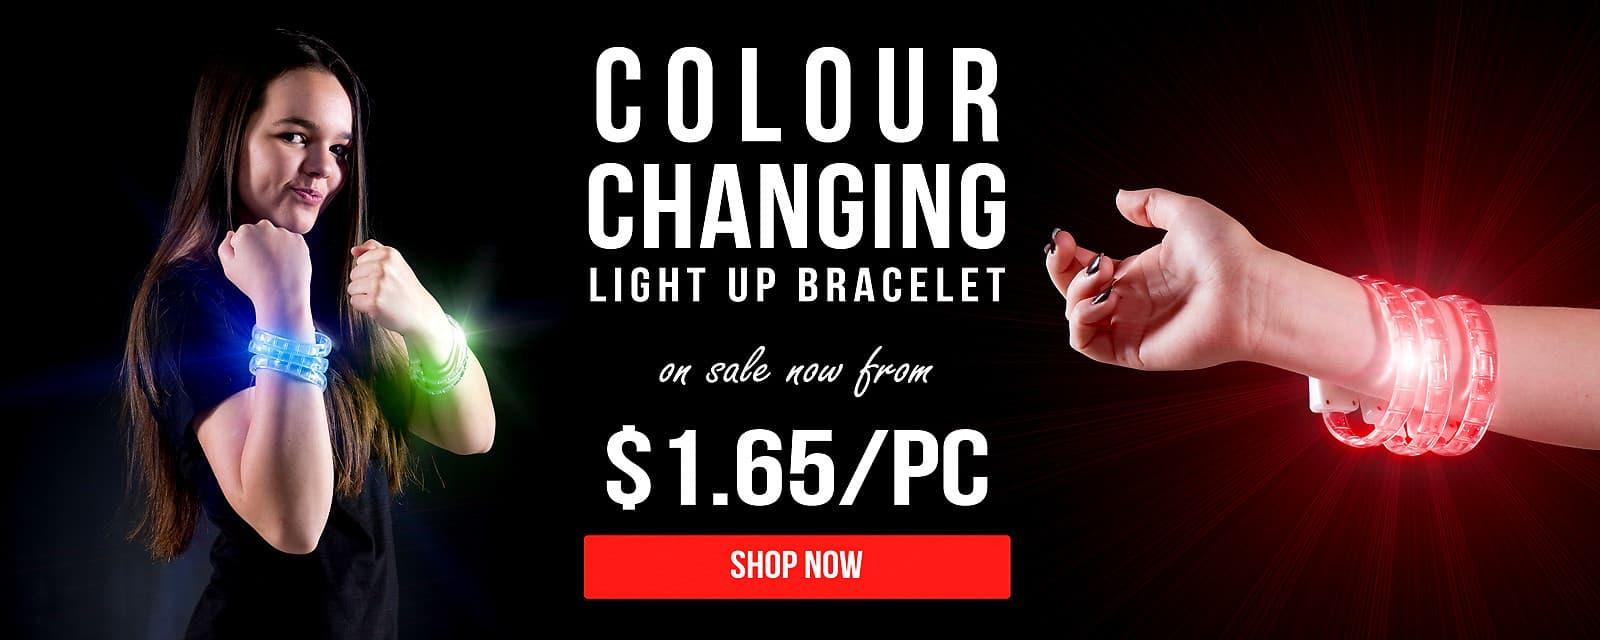 Colour Changing Light Up Bracelet